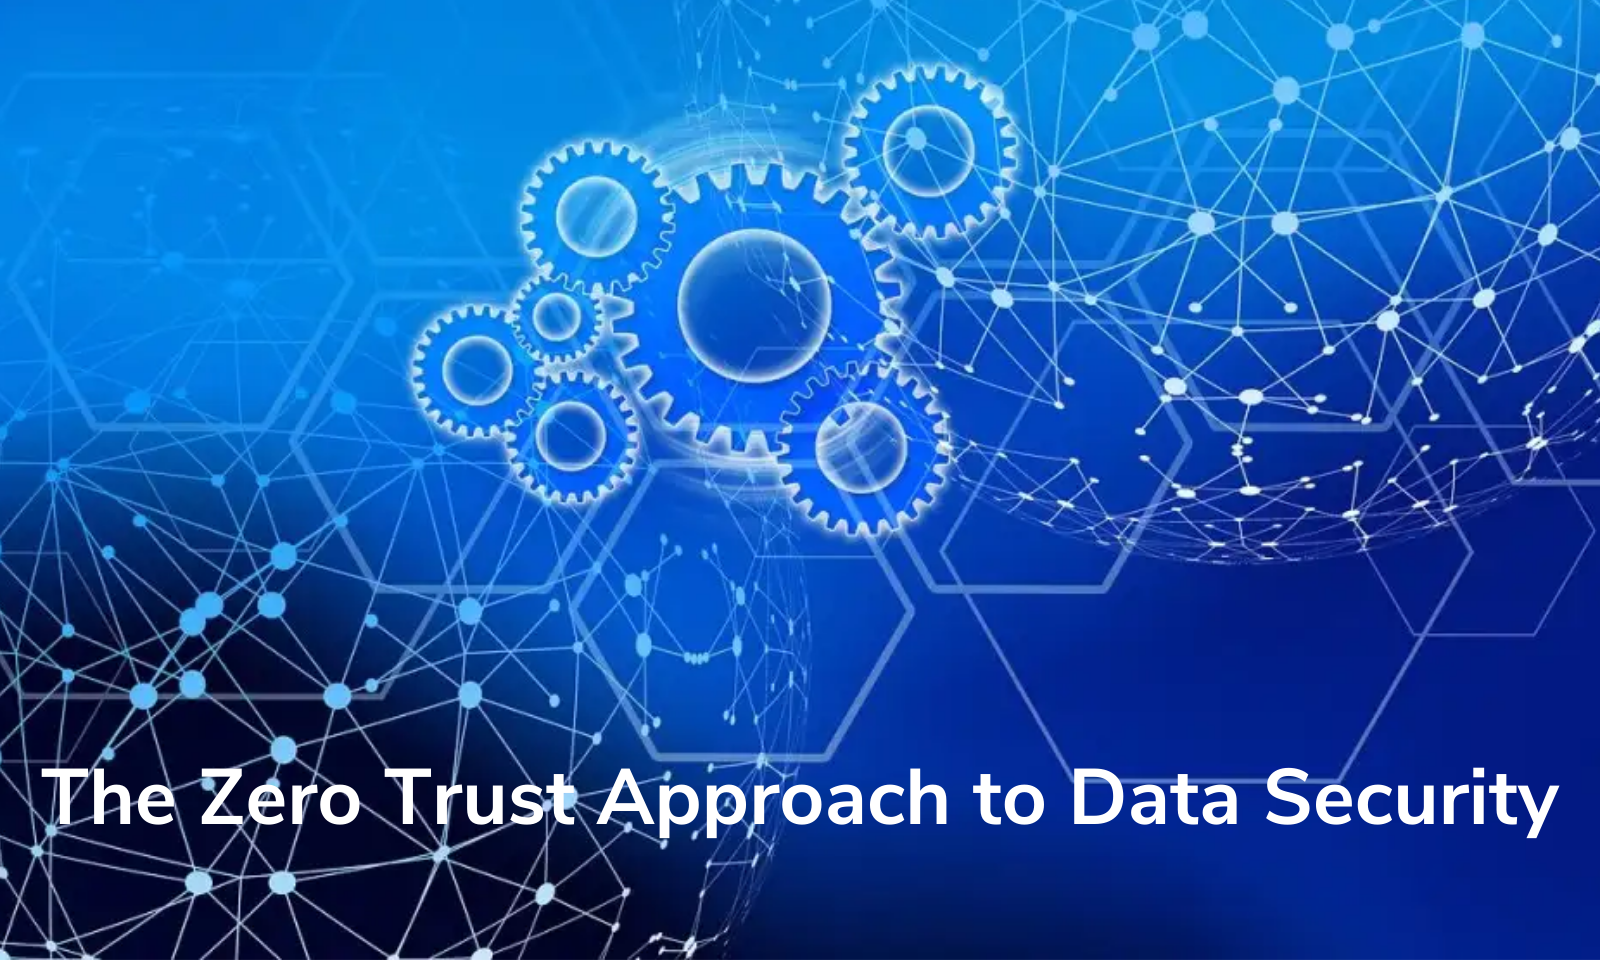 The Zero Trust Approach to Data Security